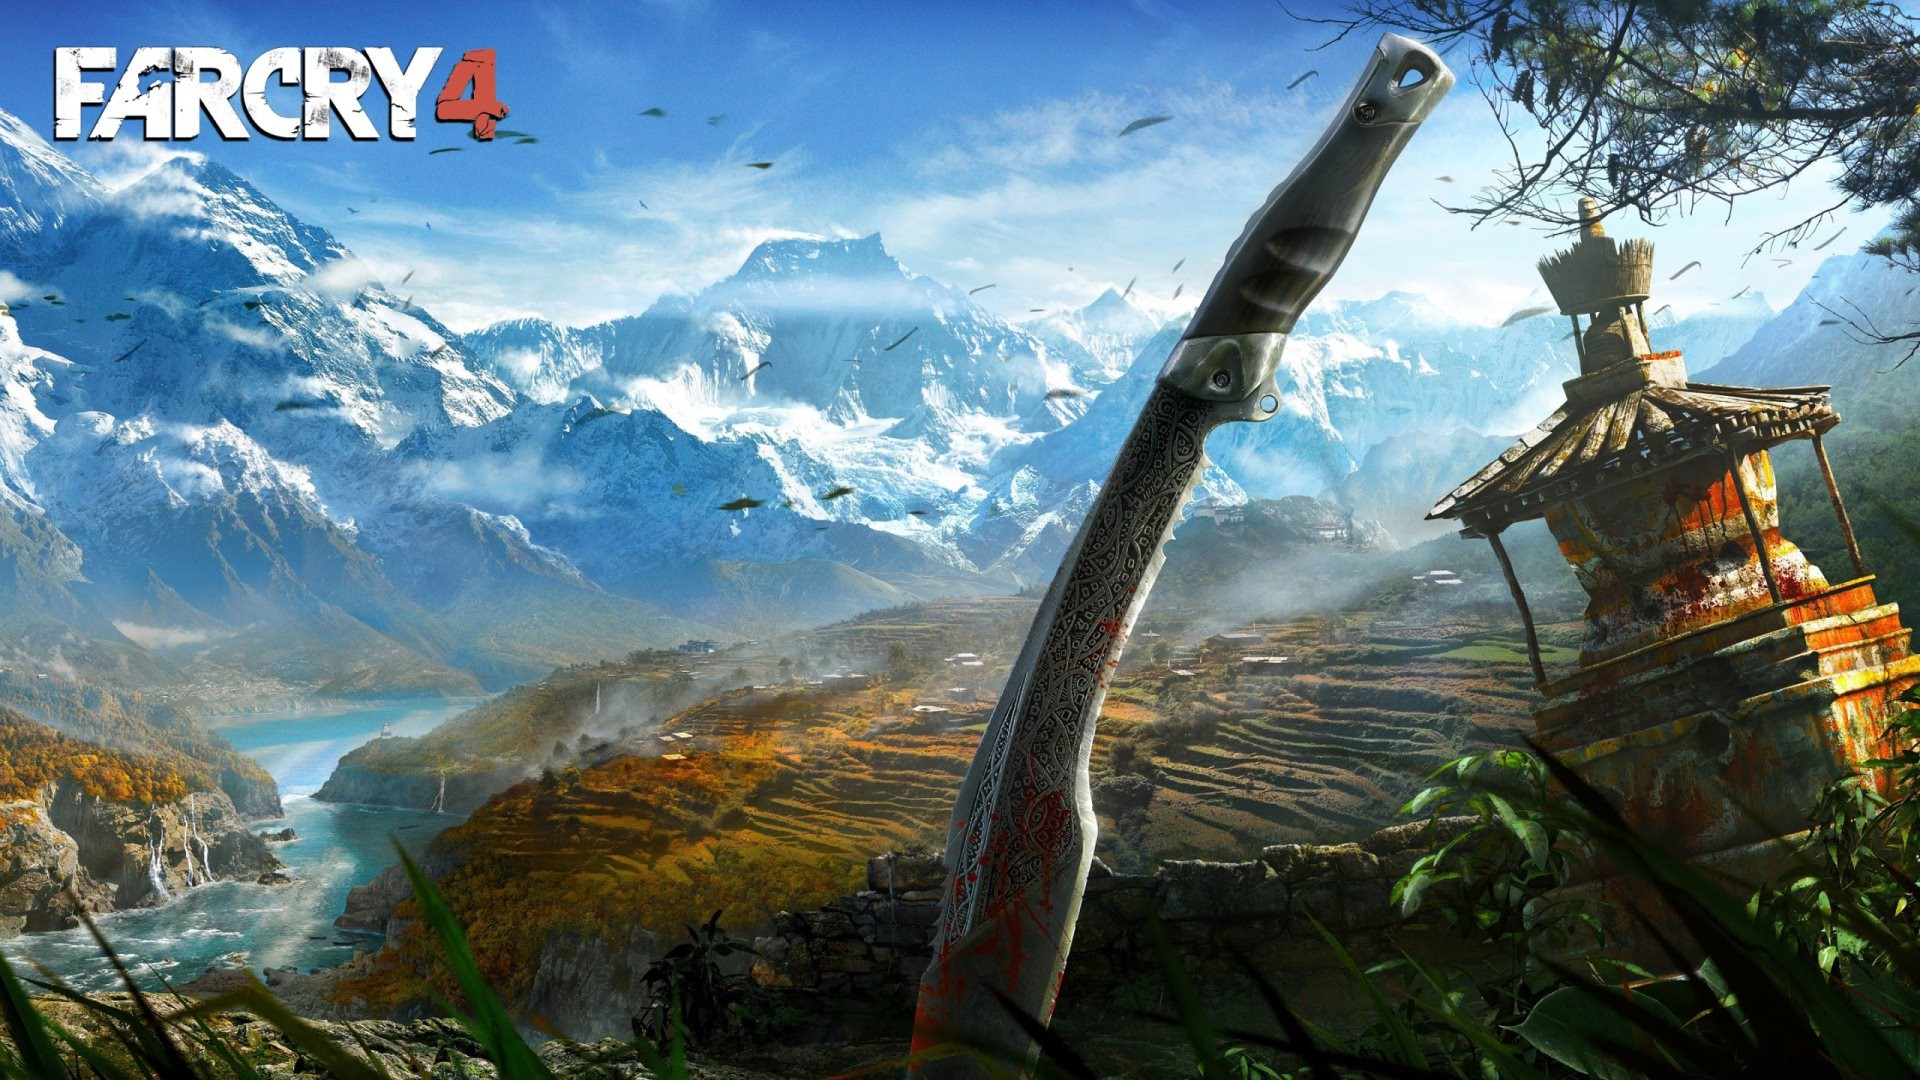 1920x1080 The 2nd wallpaper from Far Cry 4 listed below and ready in HD and wide  sizes to be set on desktop backgrounds